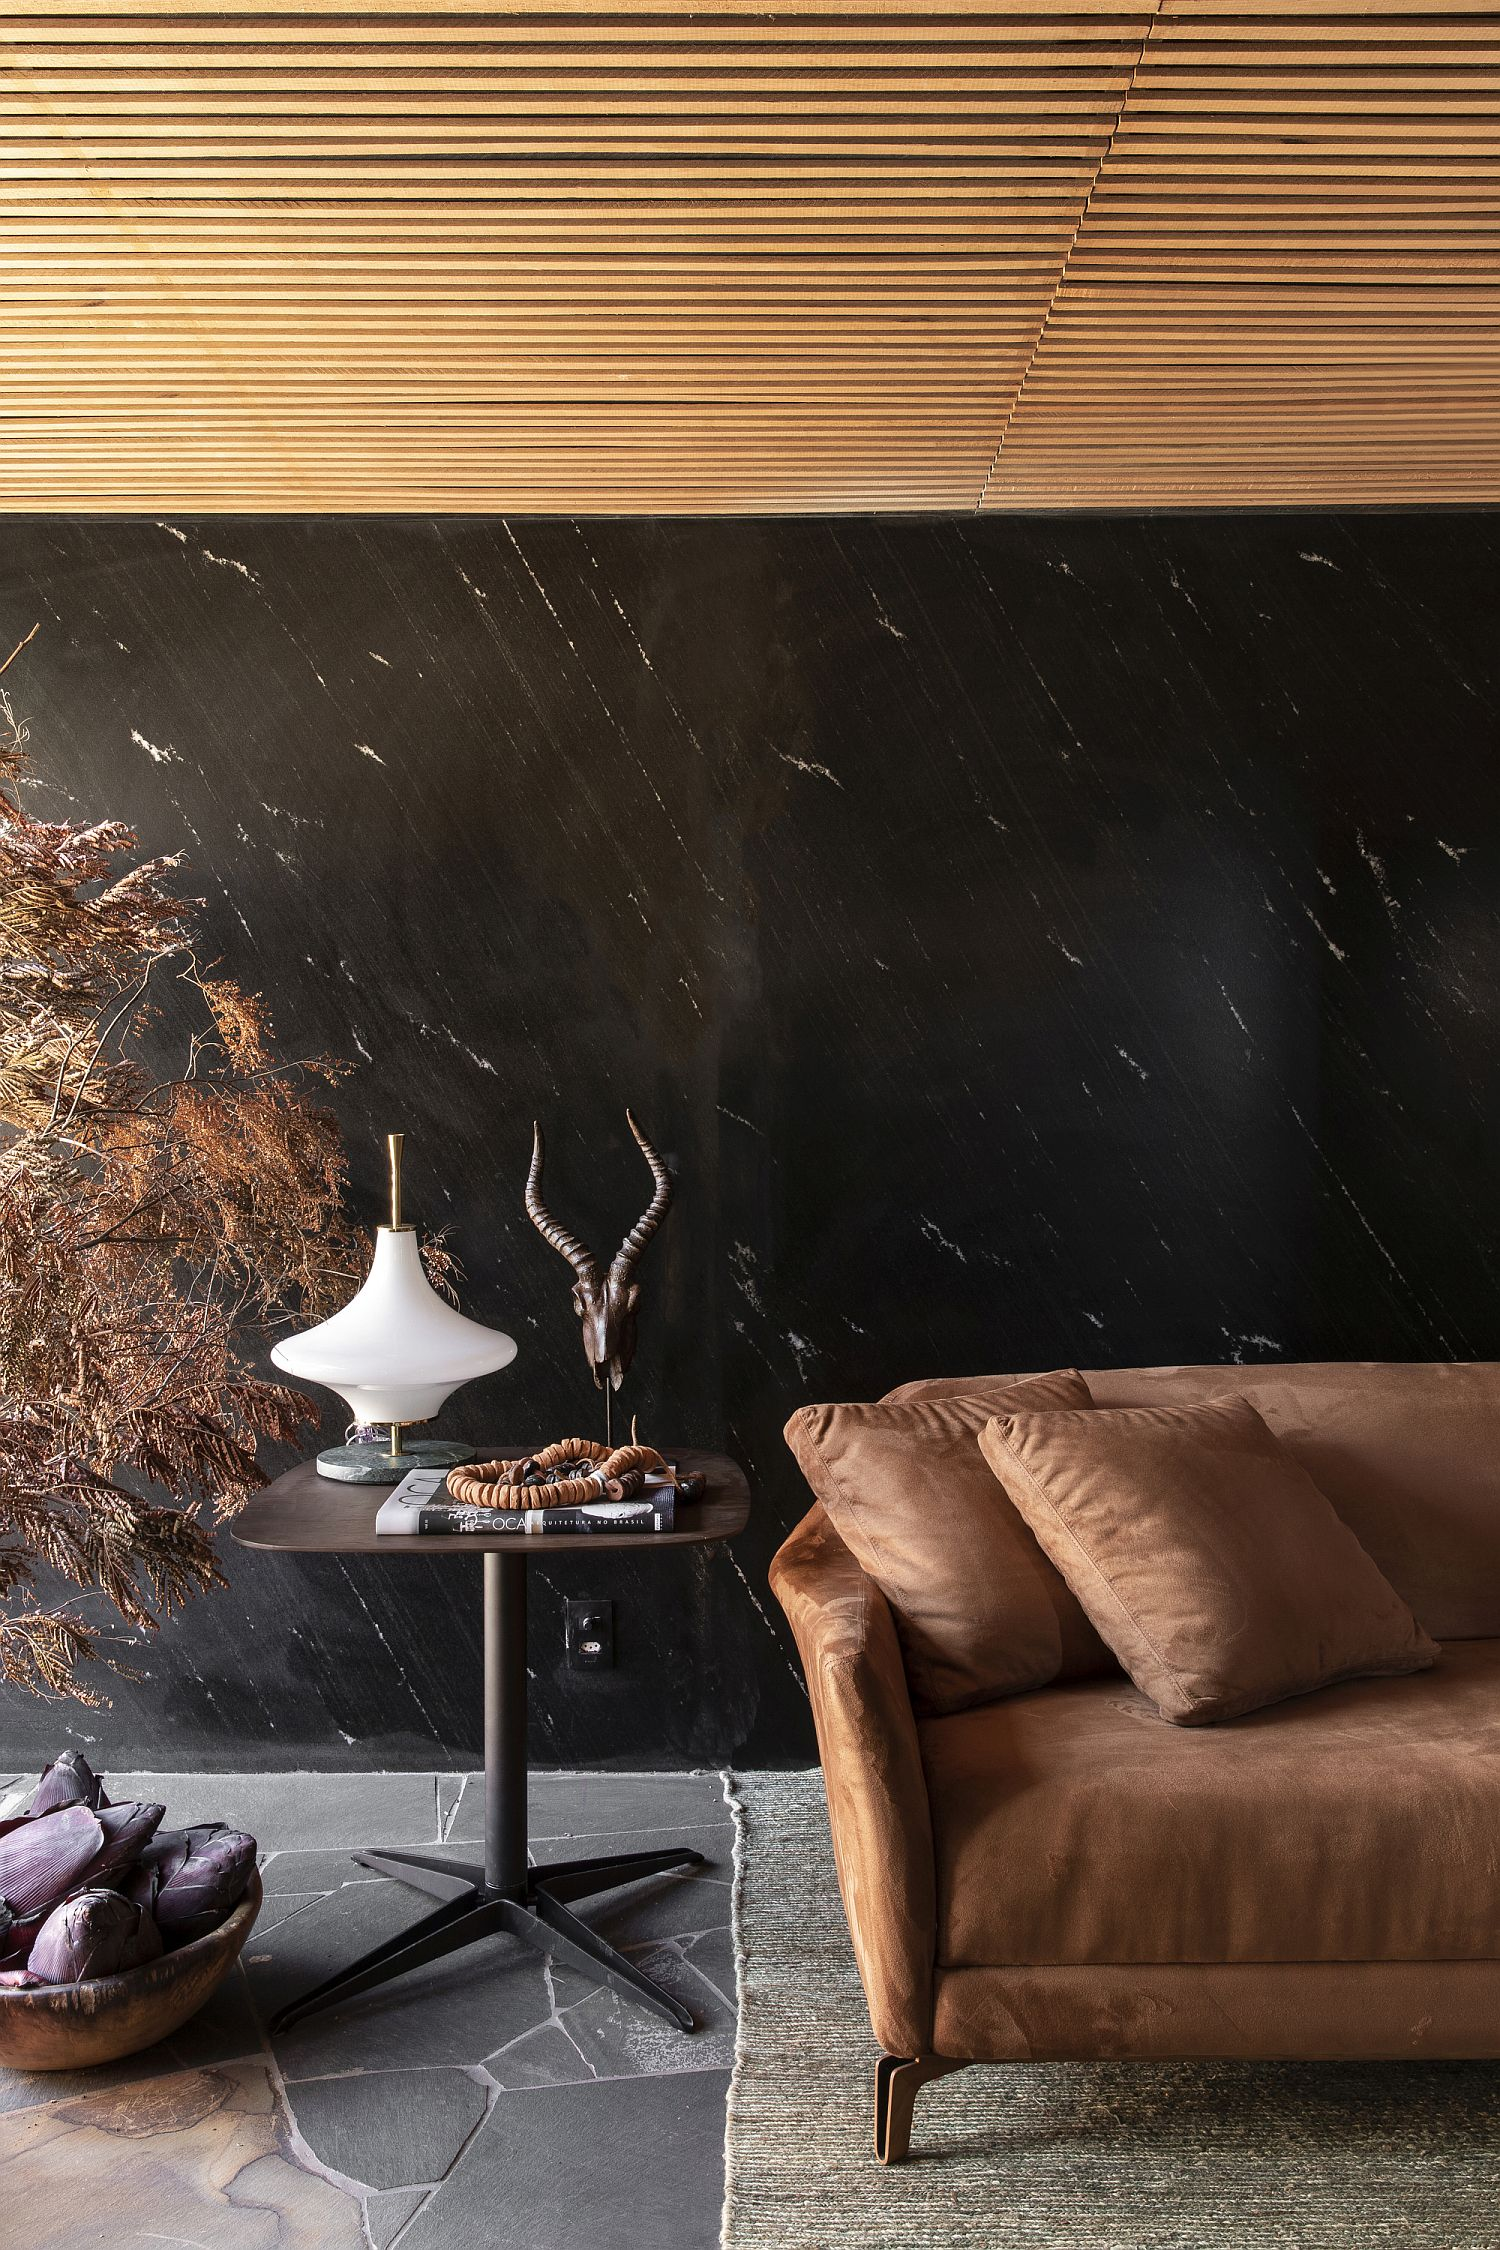 Polished-living-room-of-the-Brazilian-home-in-wood-and-black